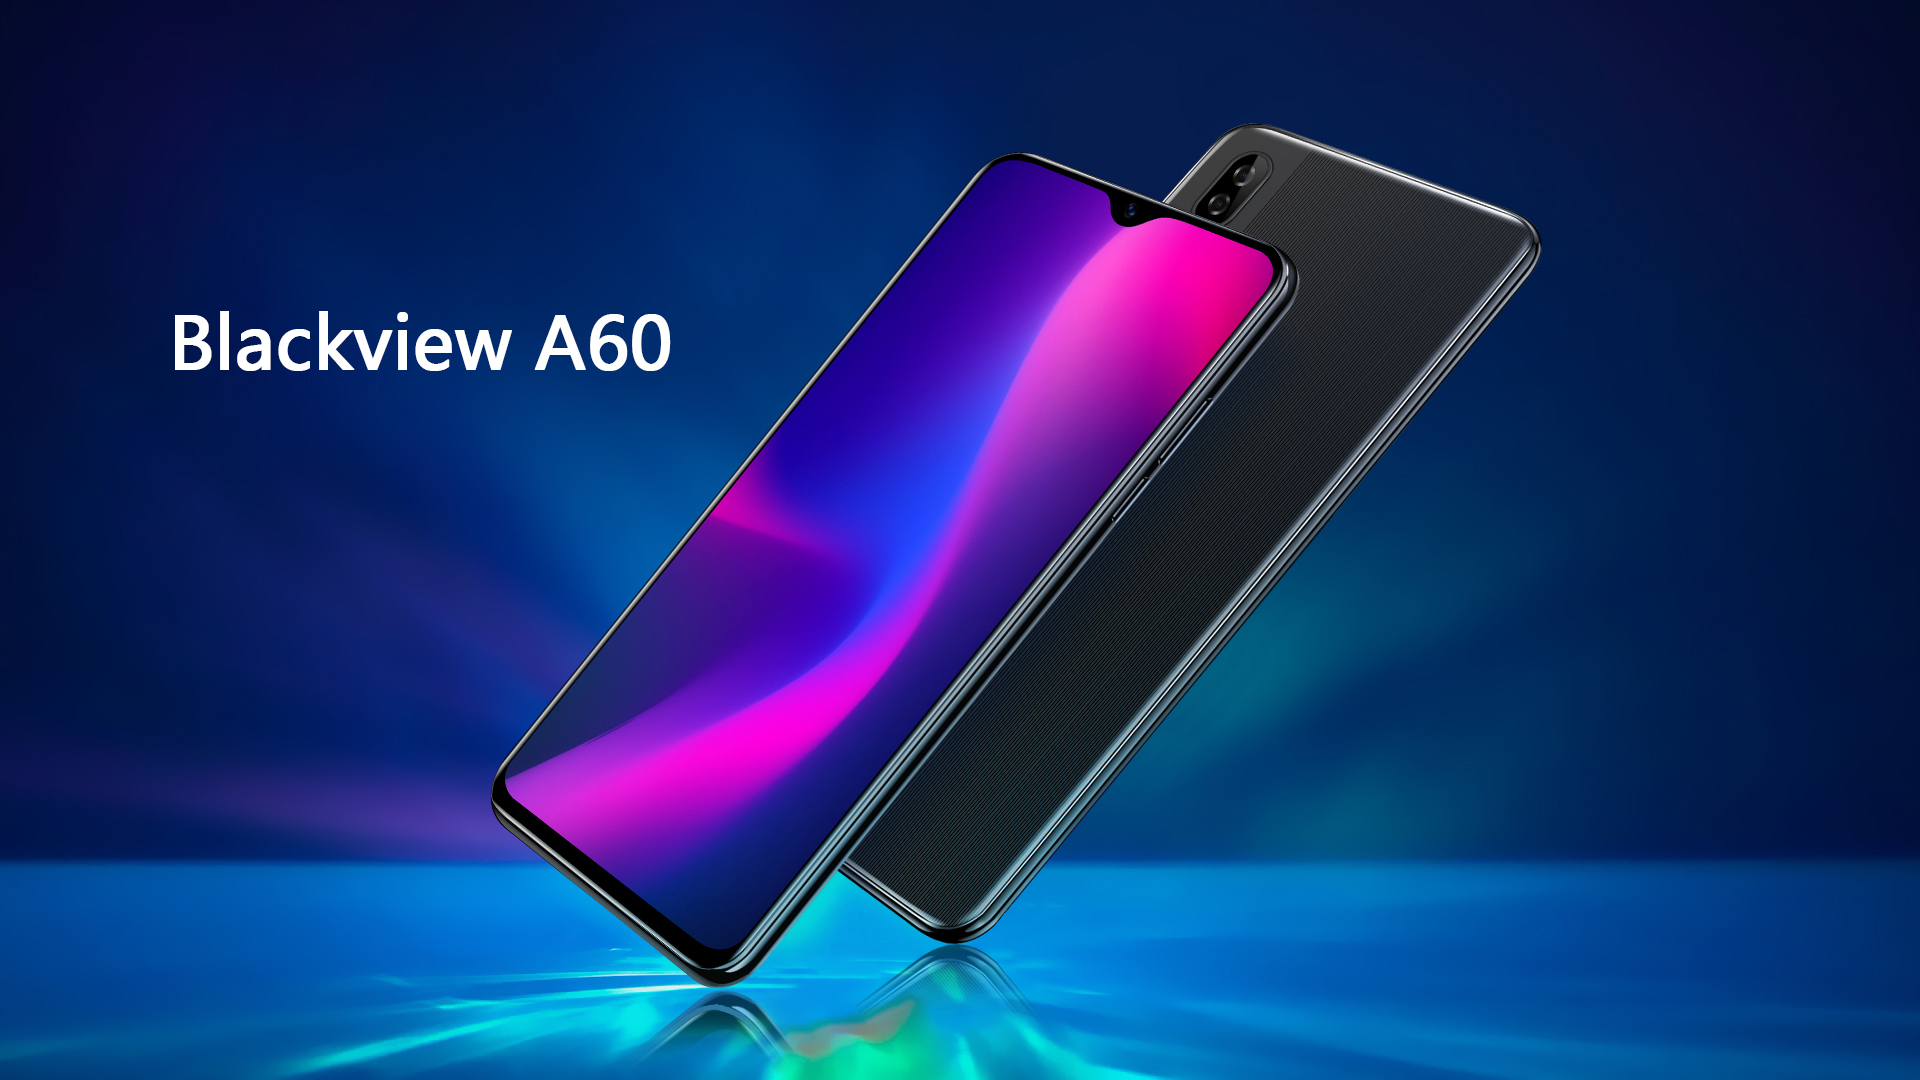 The new Blackview A60 is an Android Go phone with a big 4080 mAh